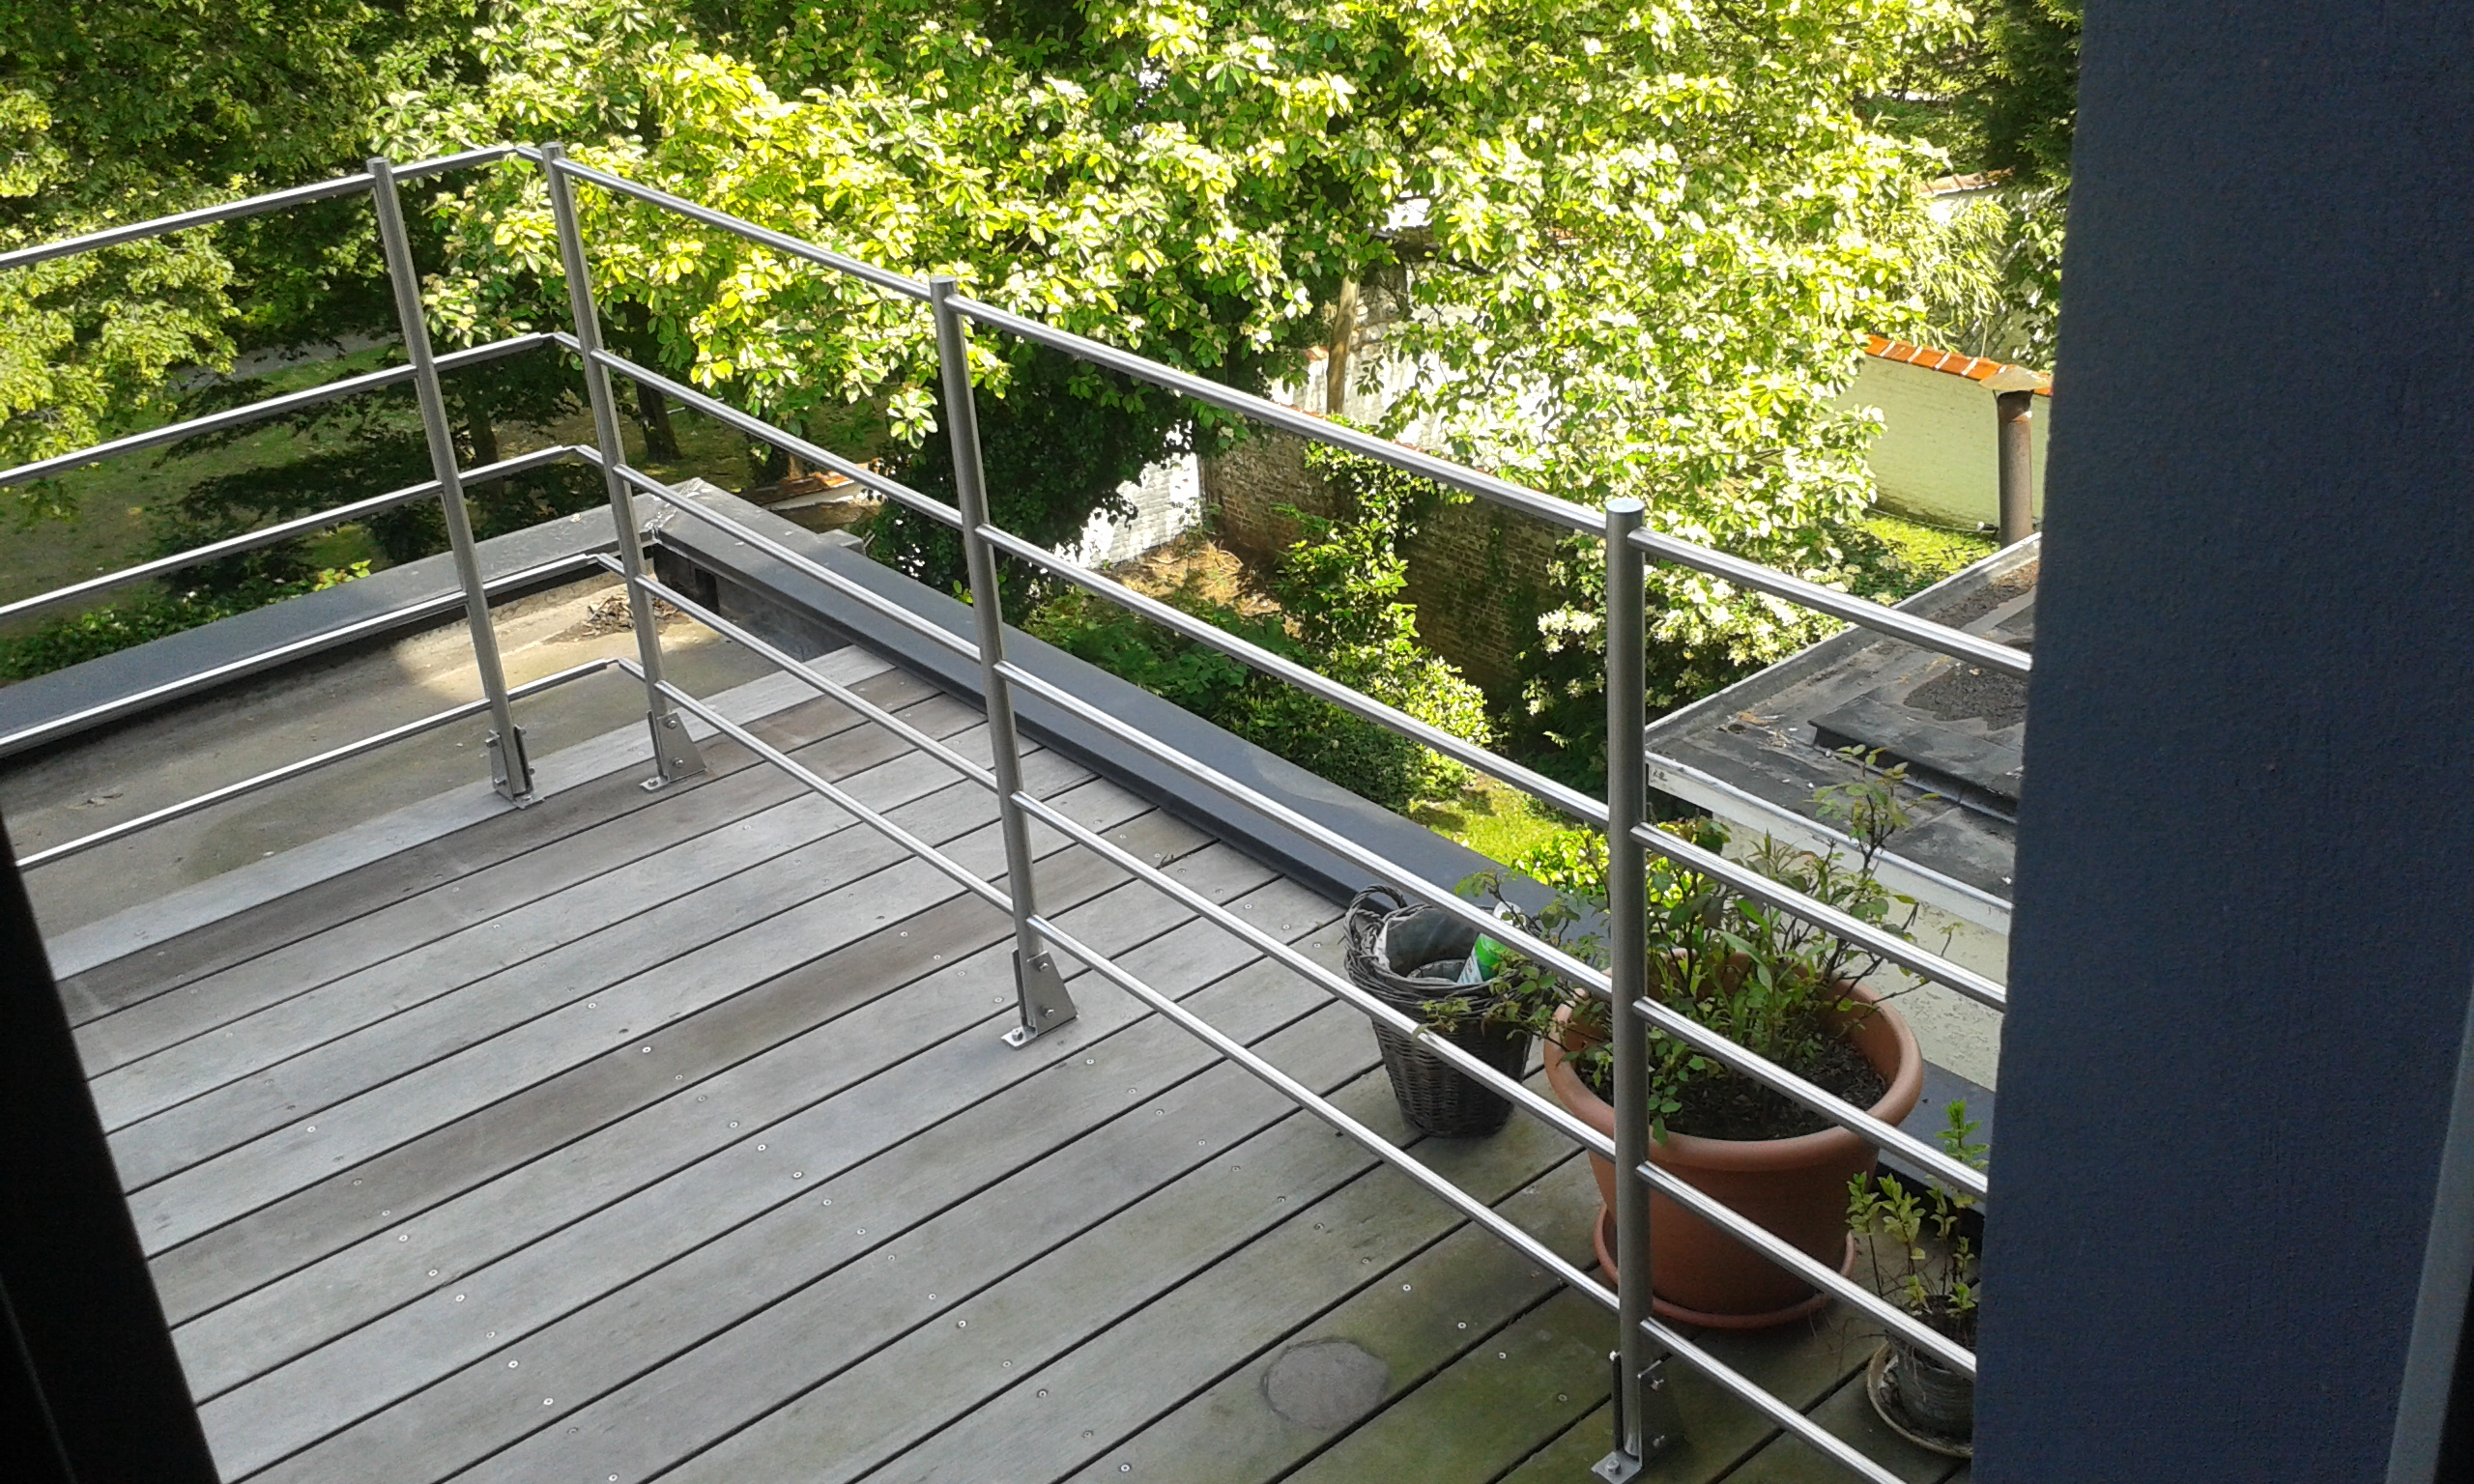 Balustrade Terrasse Castorama Kit Balustrade Escalier Perfect Pose Possible En Rampant